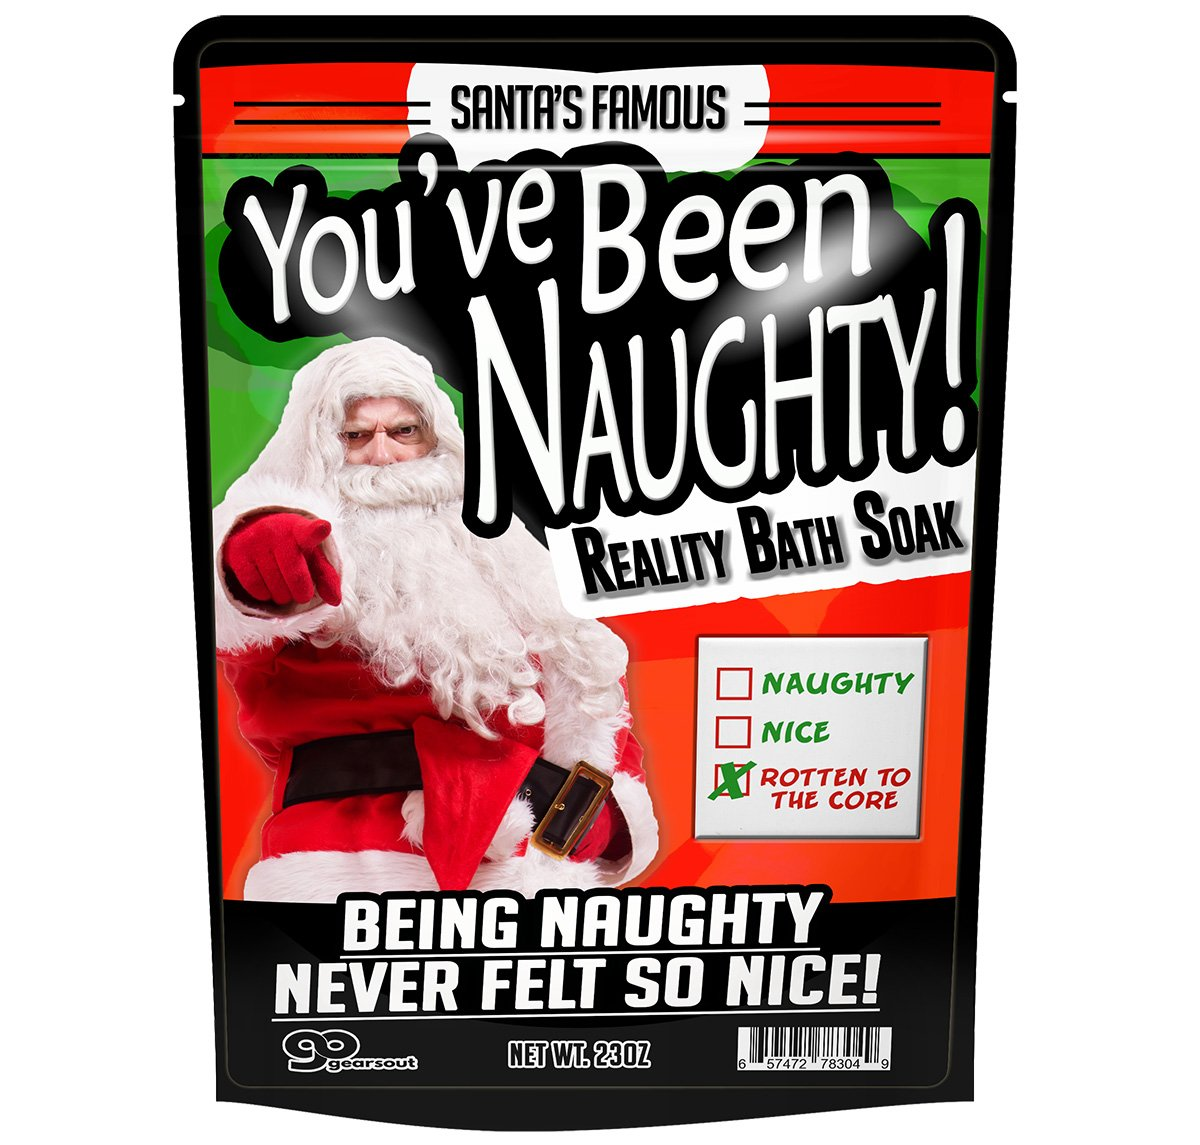 Cute Christmas Gifts For Friends.Buy You Ve Been Naughty Bath Soak Funny Santa Bath Salts